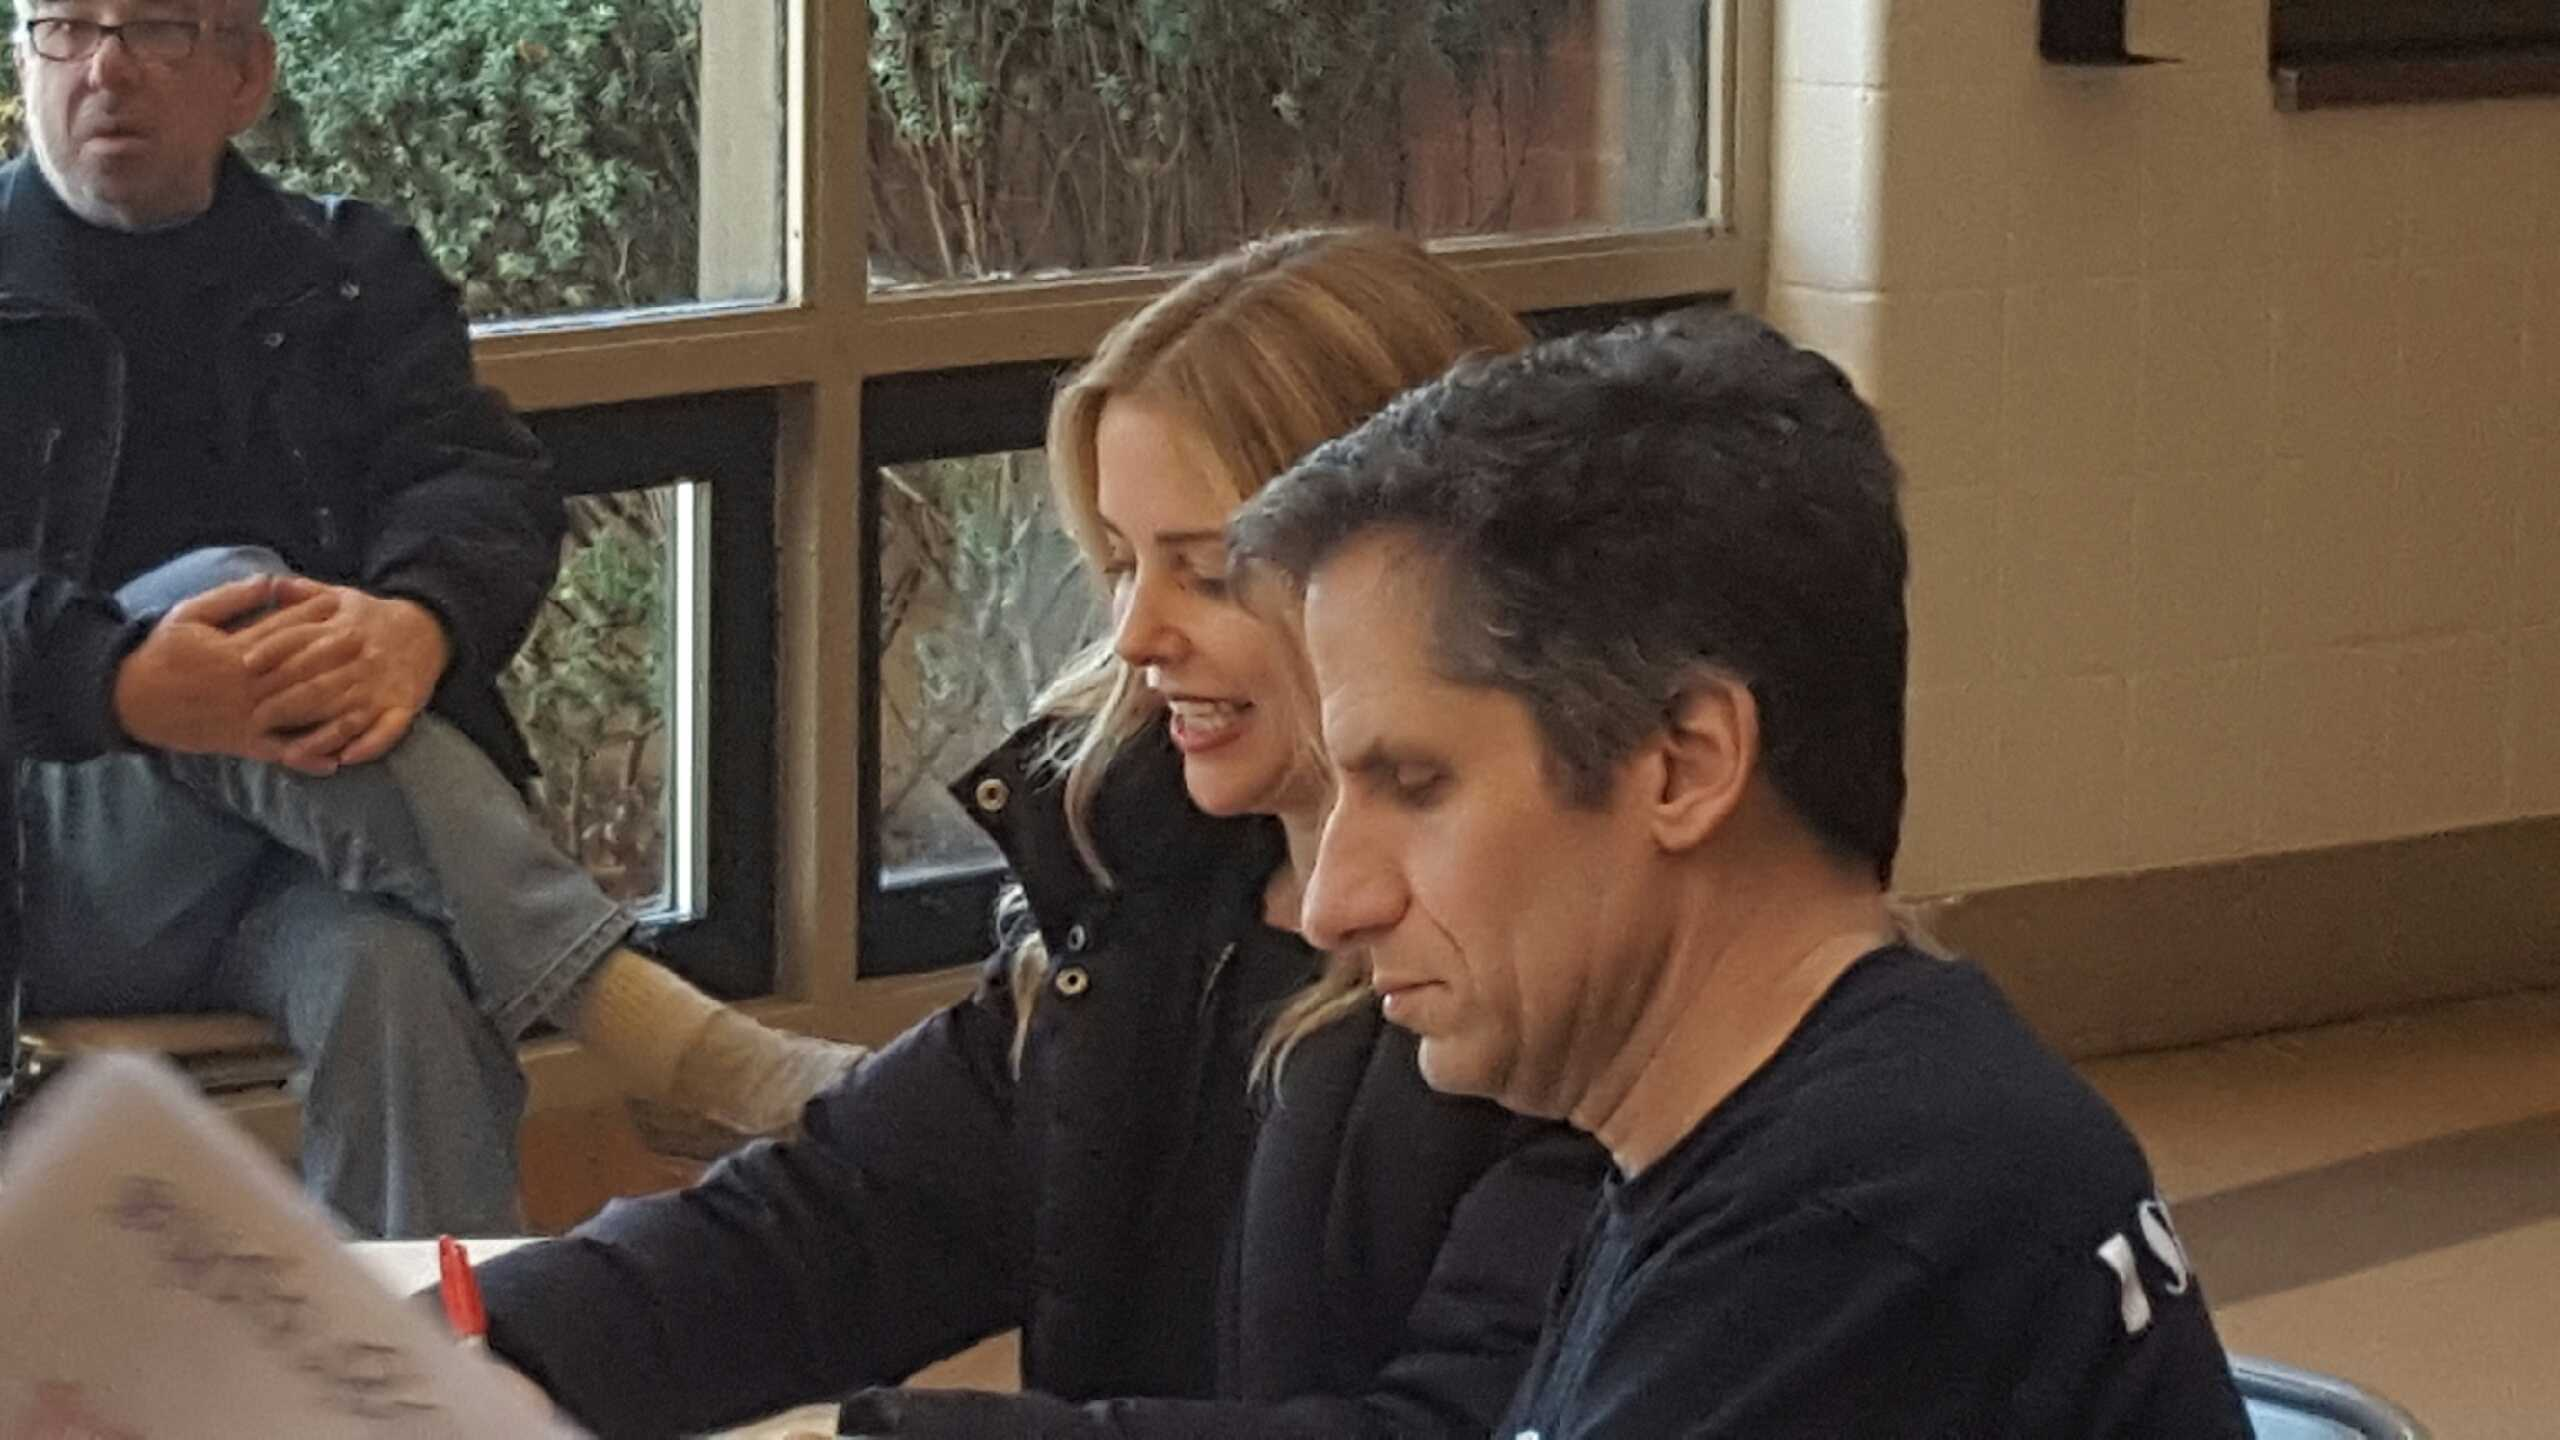 Seth Rudetsky (front) and Kerry Butler (back) sign autographs for students after the show